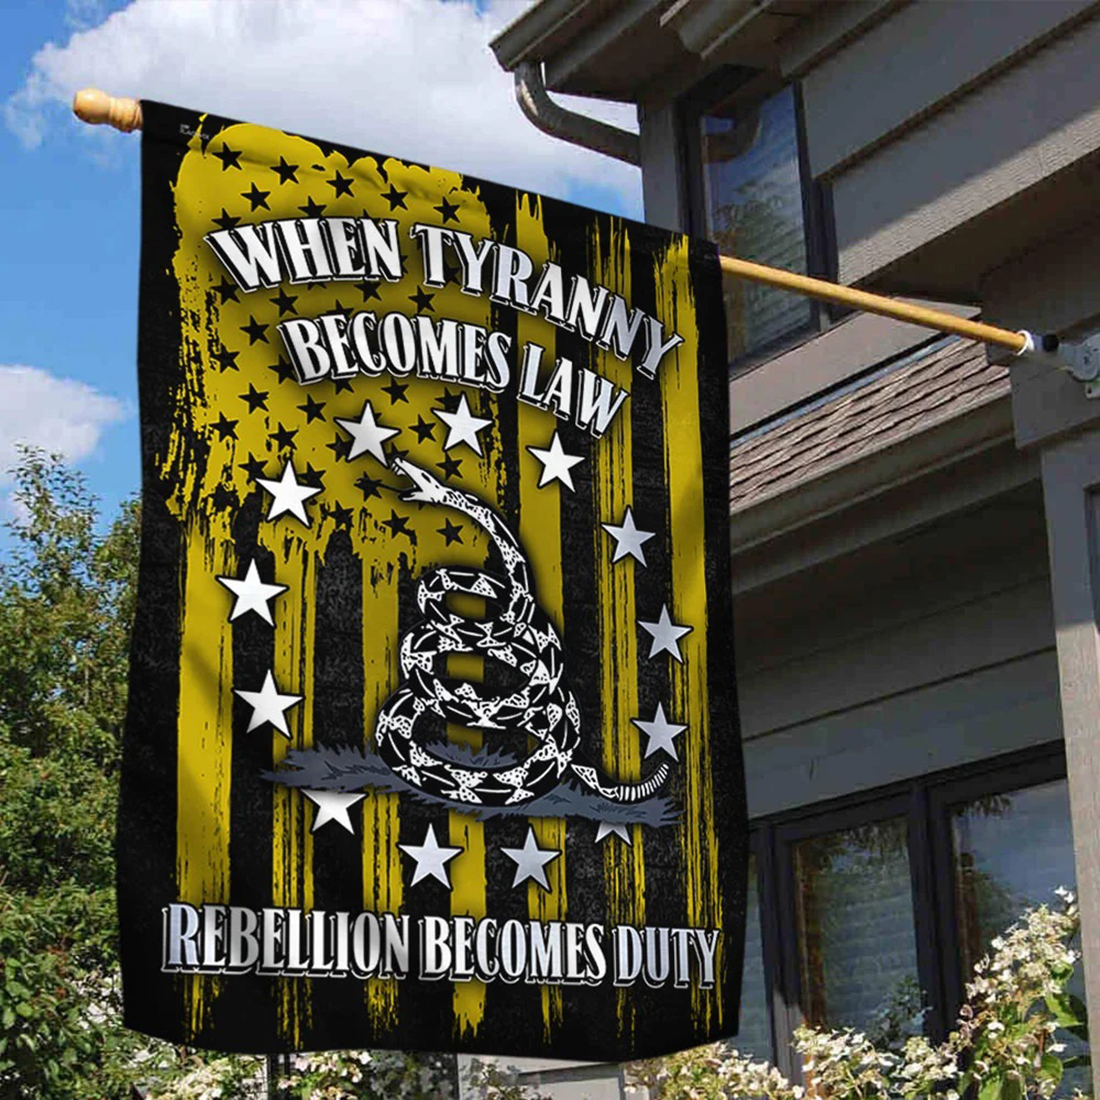 When tyranny becomes law rebellion becomes duty Gadsden flag